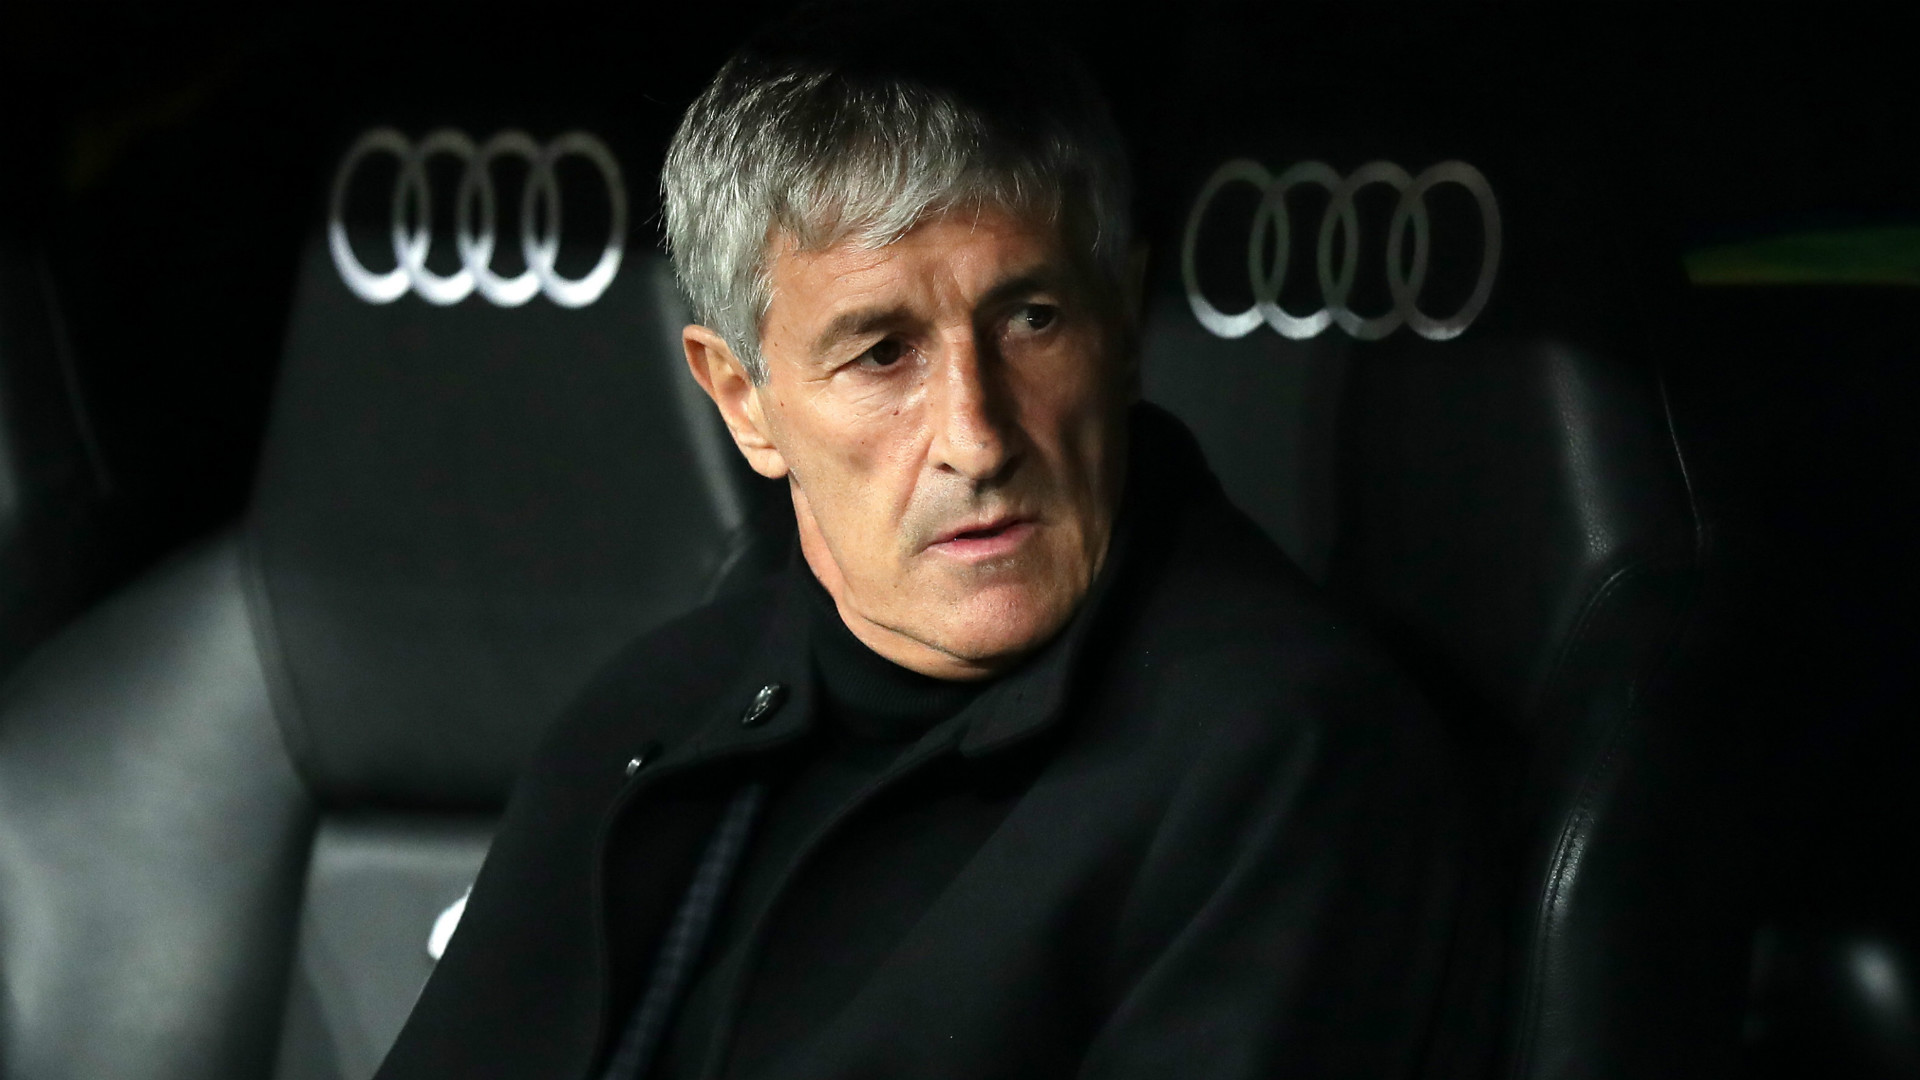 Setien was about to coach in Egypt when Barcelona approached him